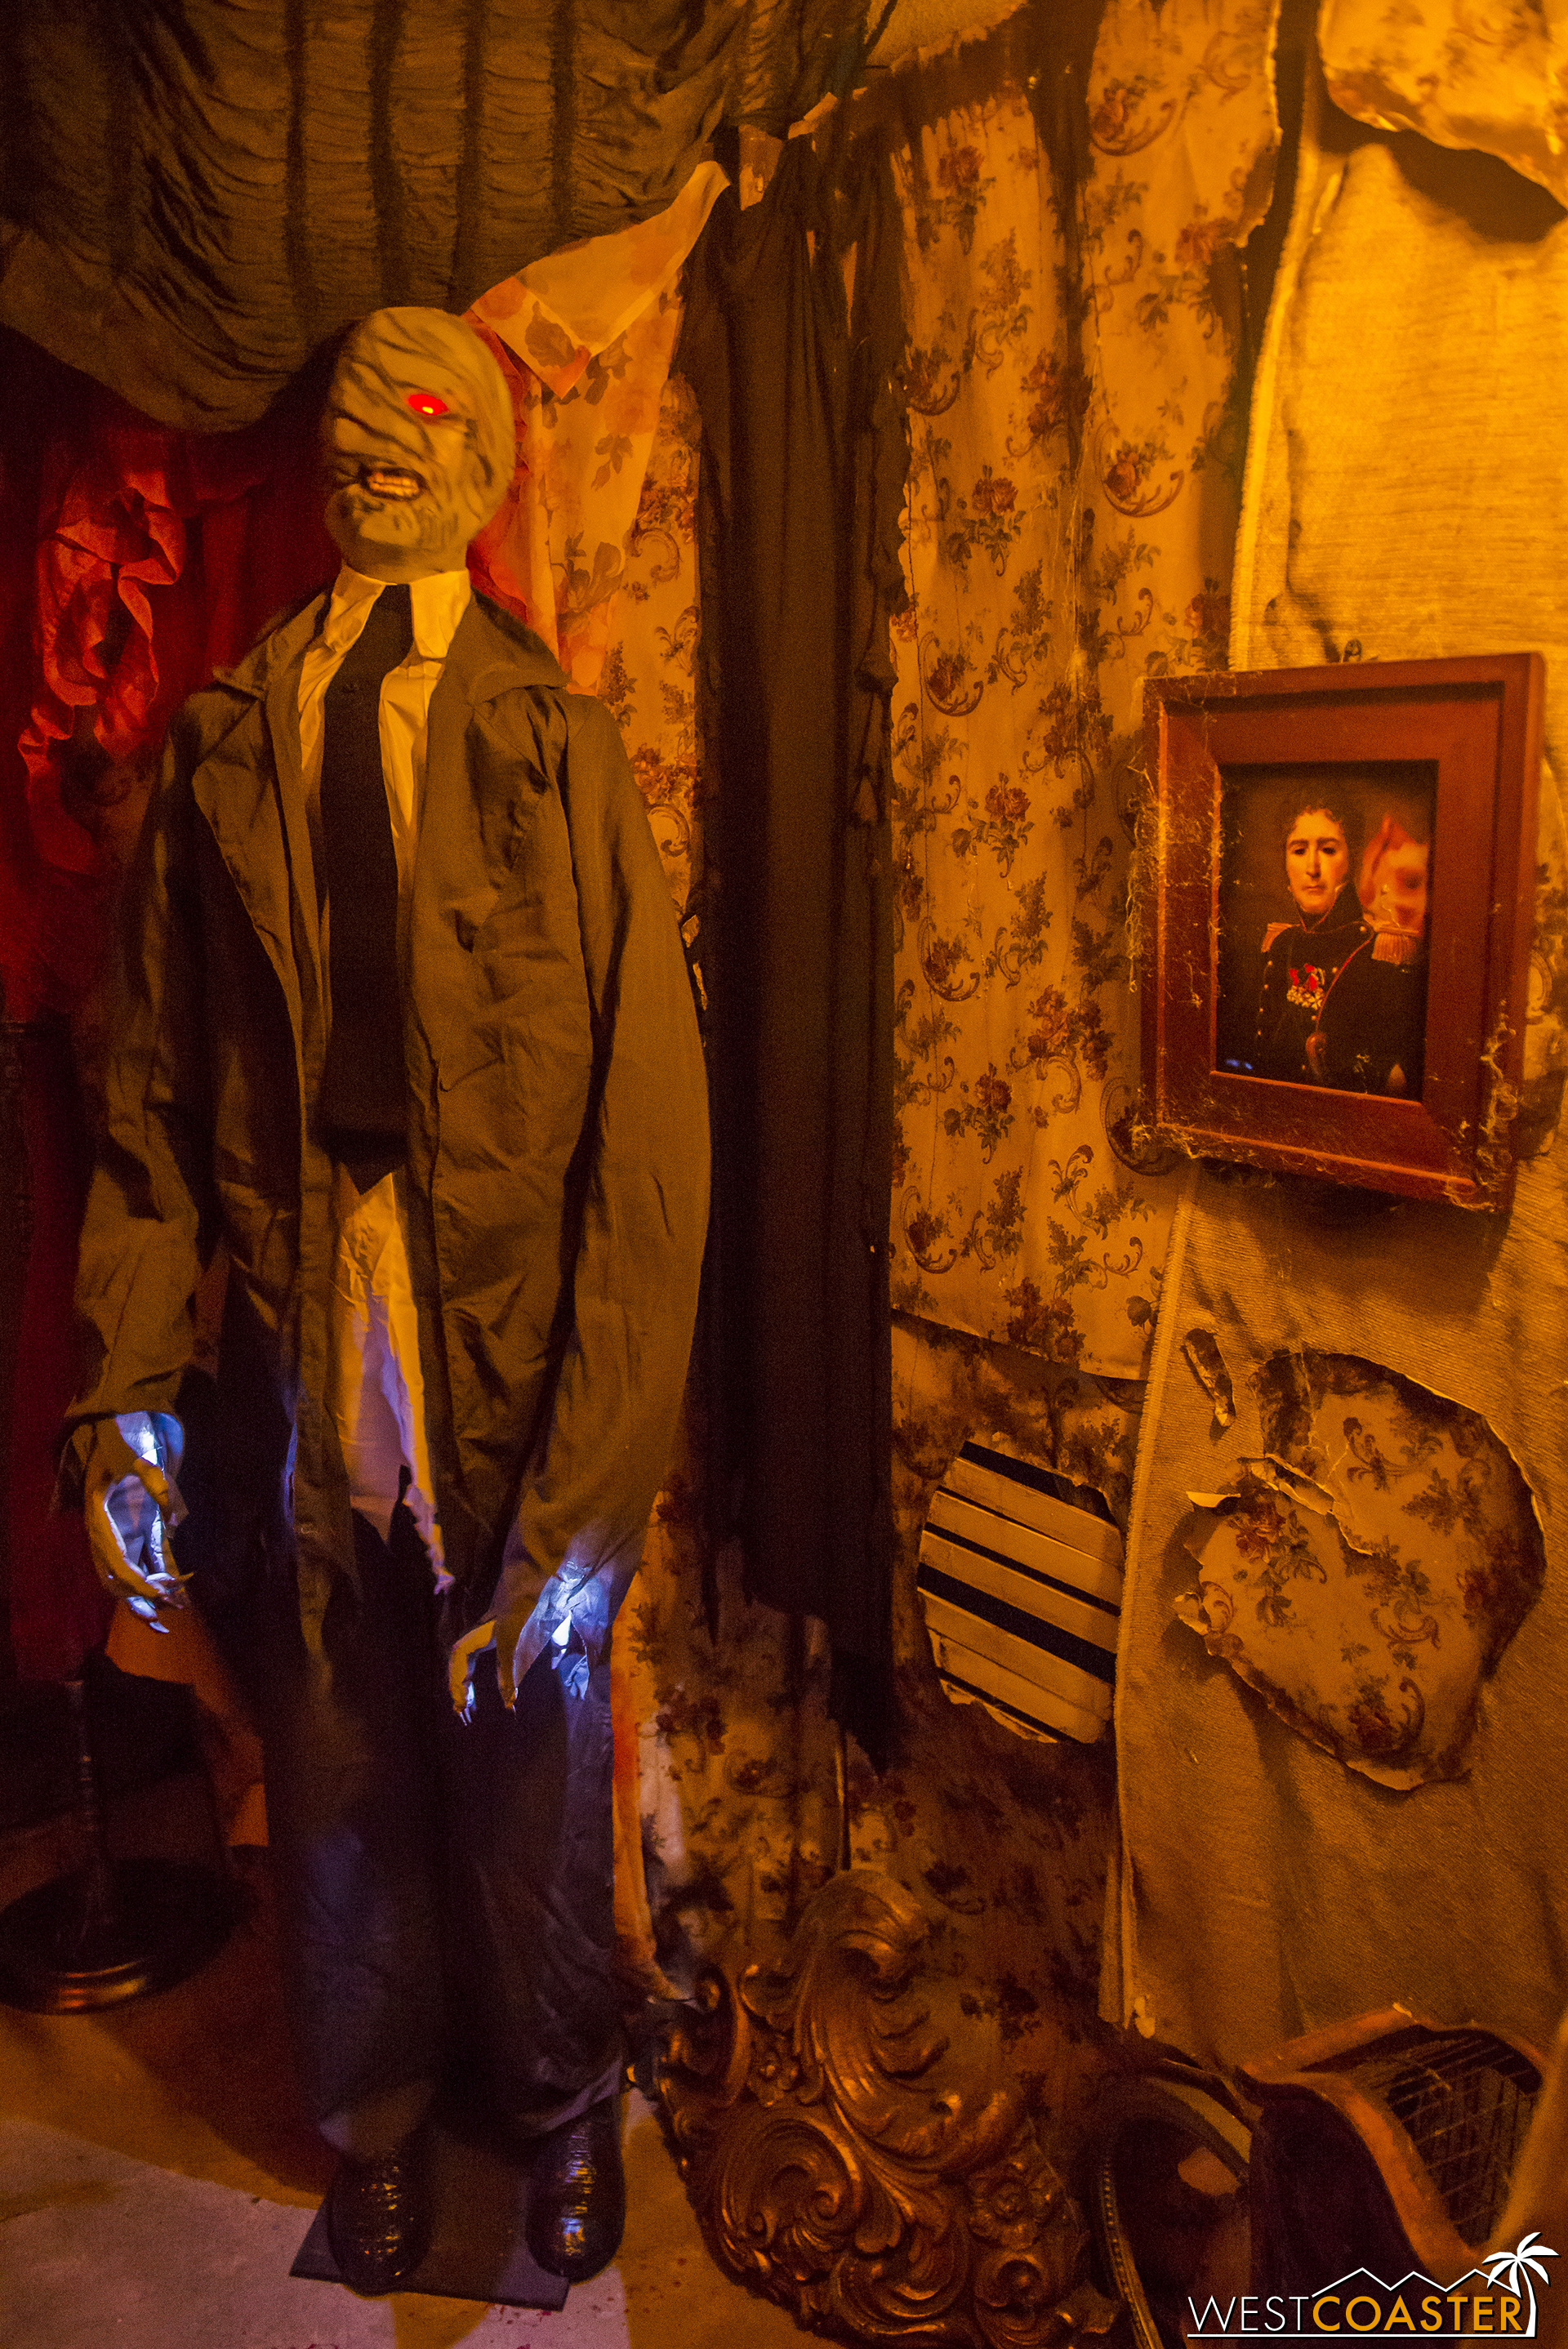 The haunt incorporates a nice mix of live actors, animatronics, and video effects.